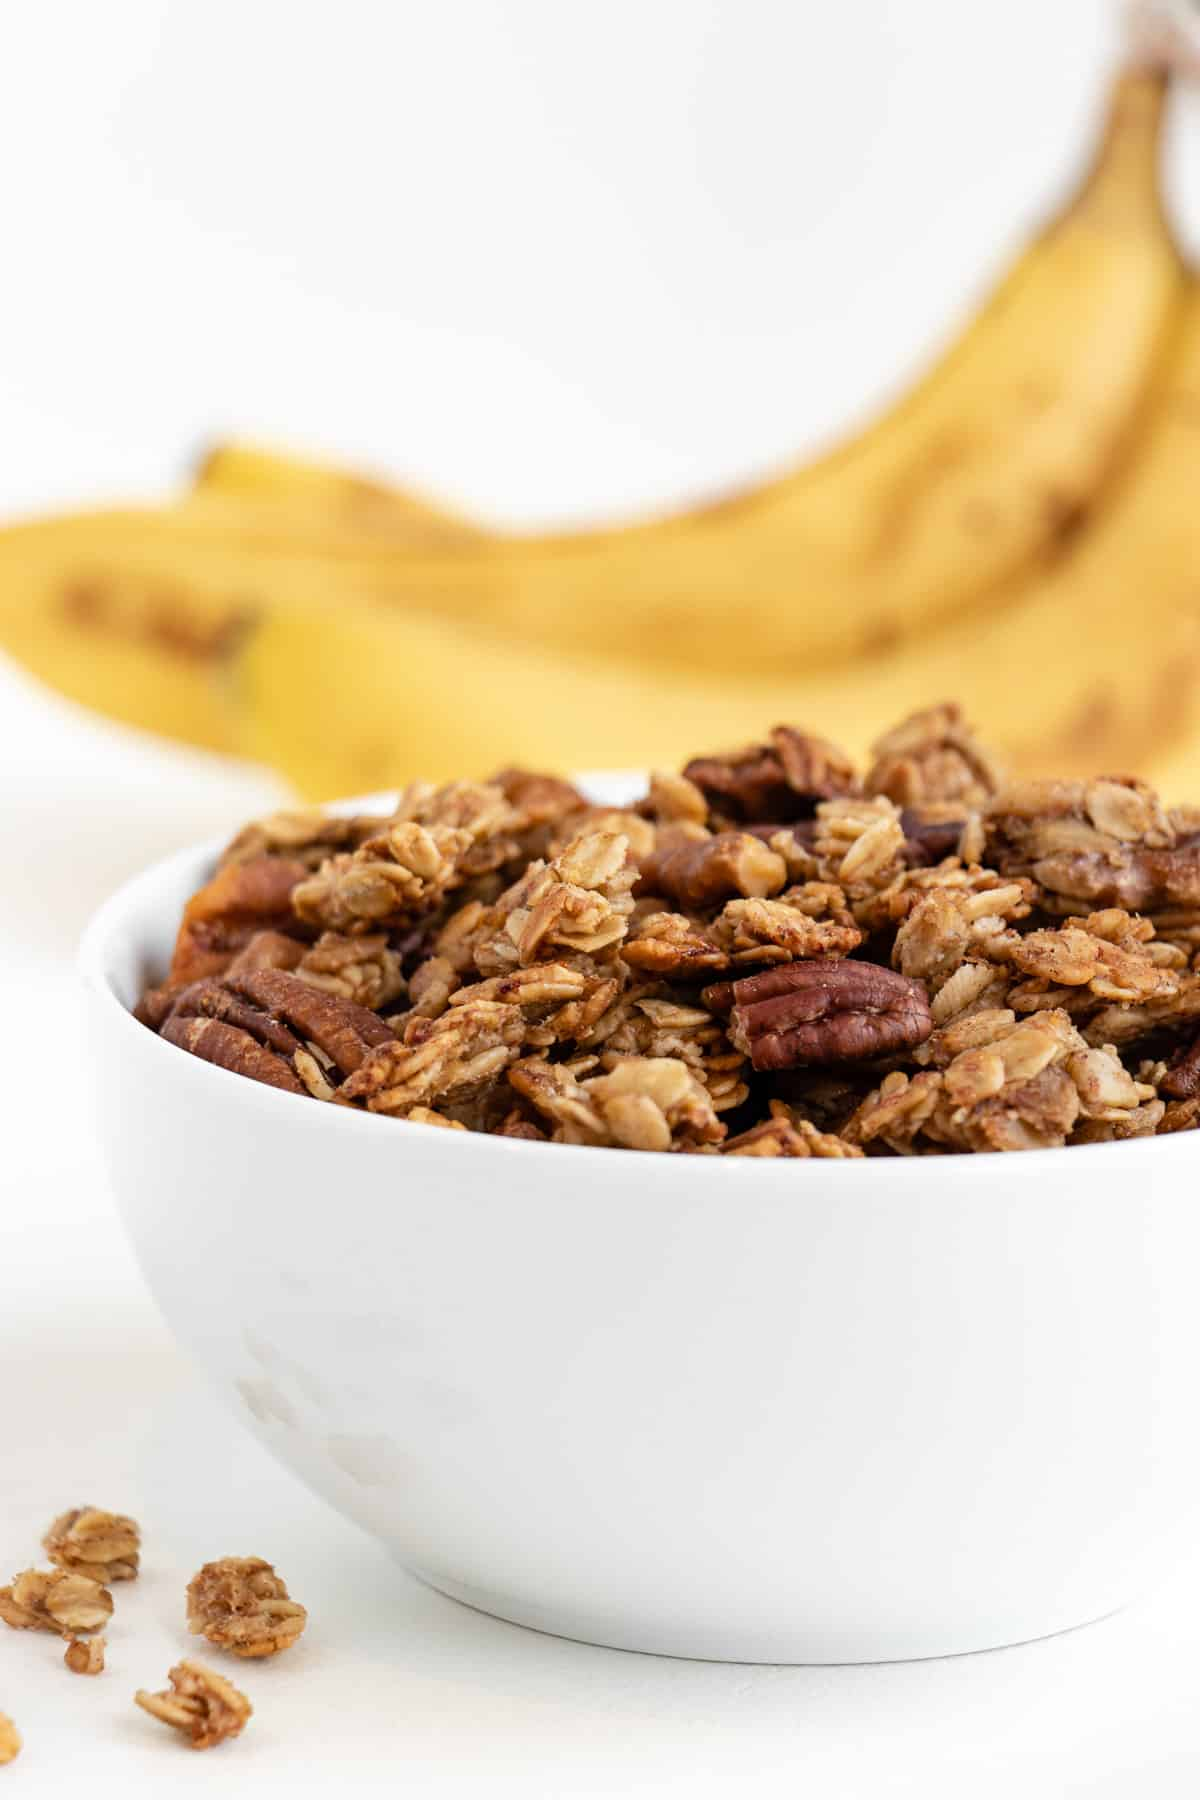 granola inside a white bowl in front of three bananas